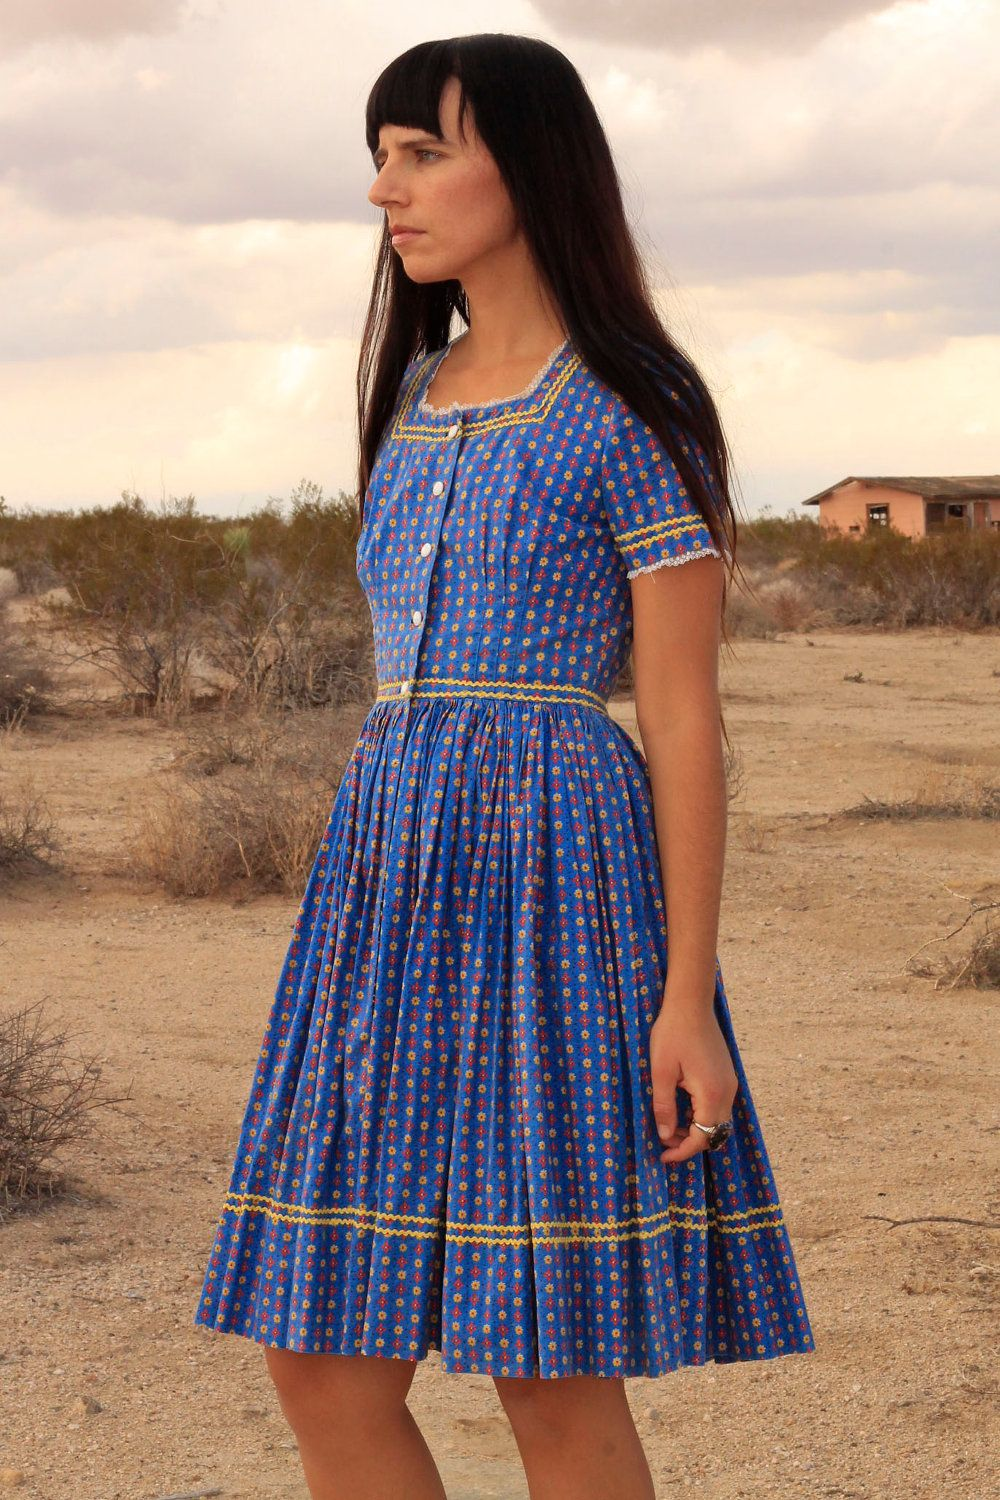 70s Prairie Girl Country Dress Country Dresses Modest Dresses Country Fashion [ 1500 x 1000 Pixel ]